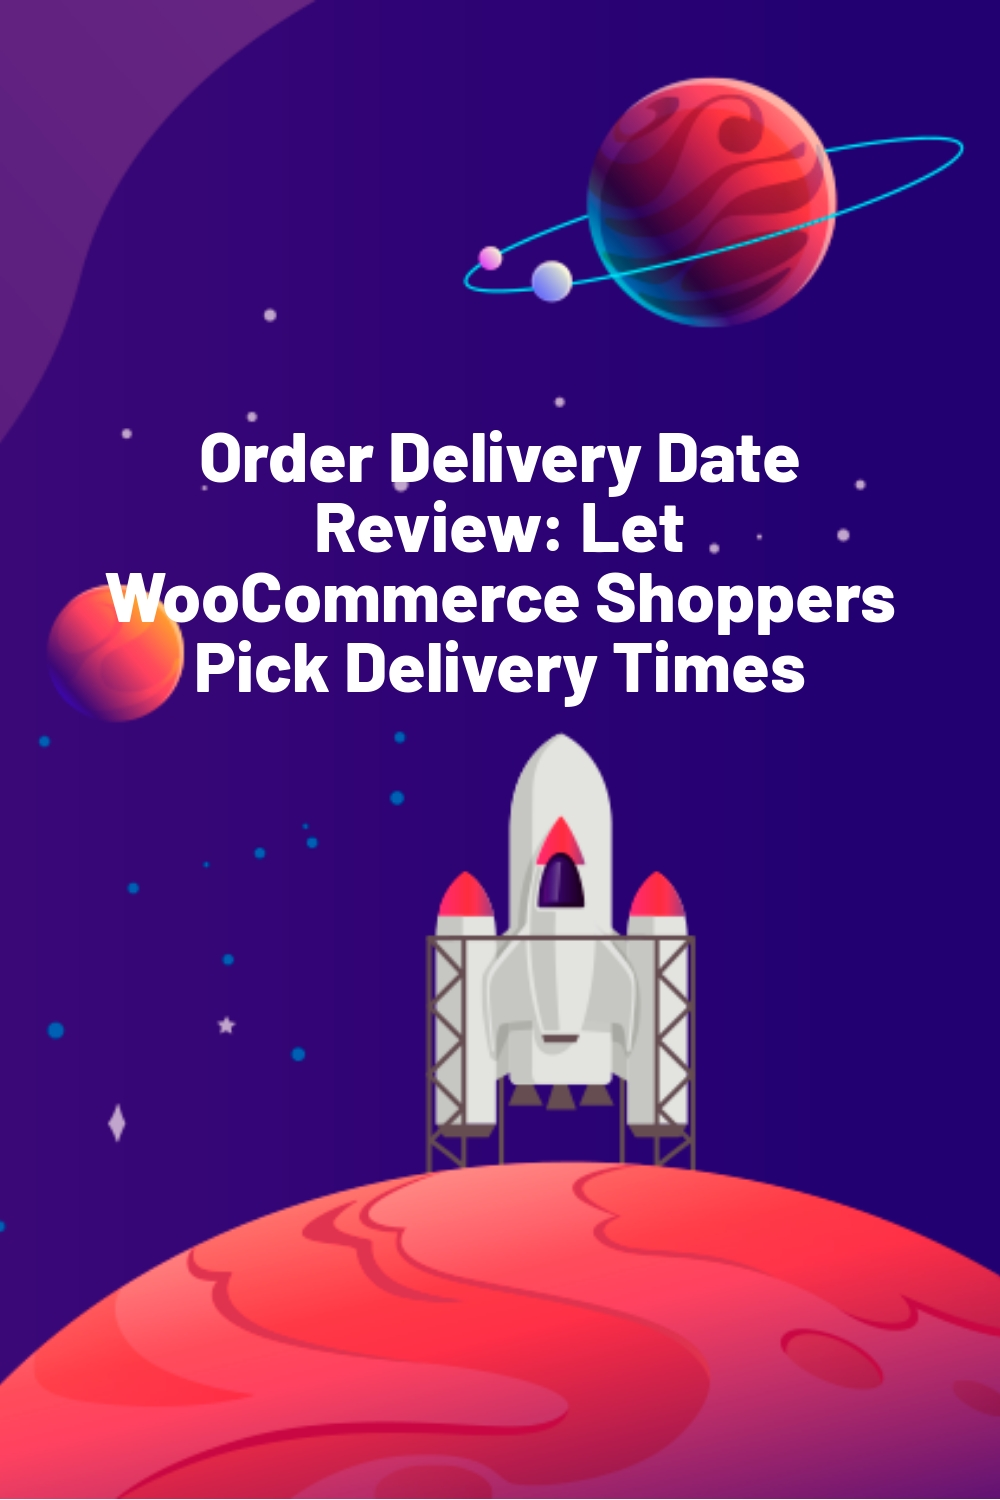 Order Delivery Date Review: Let WooCommerce Shoppers Pick Delivery Times